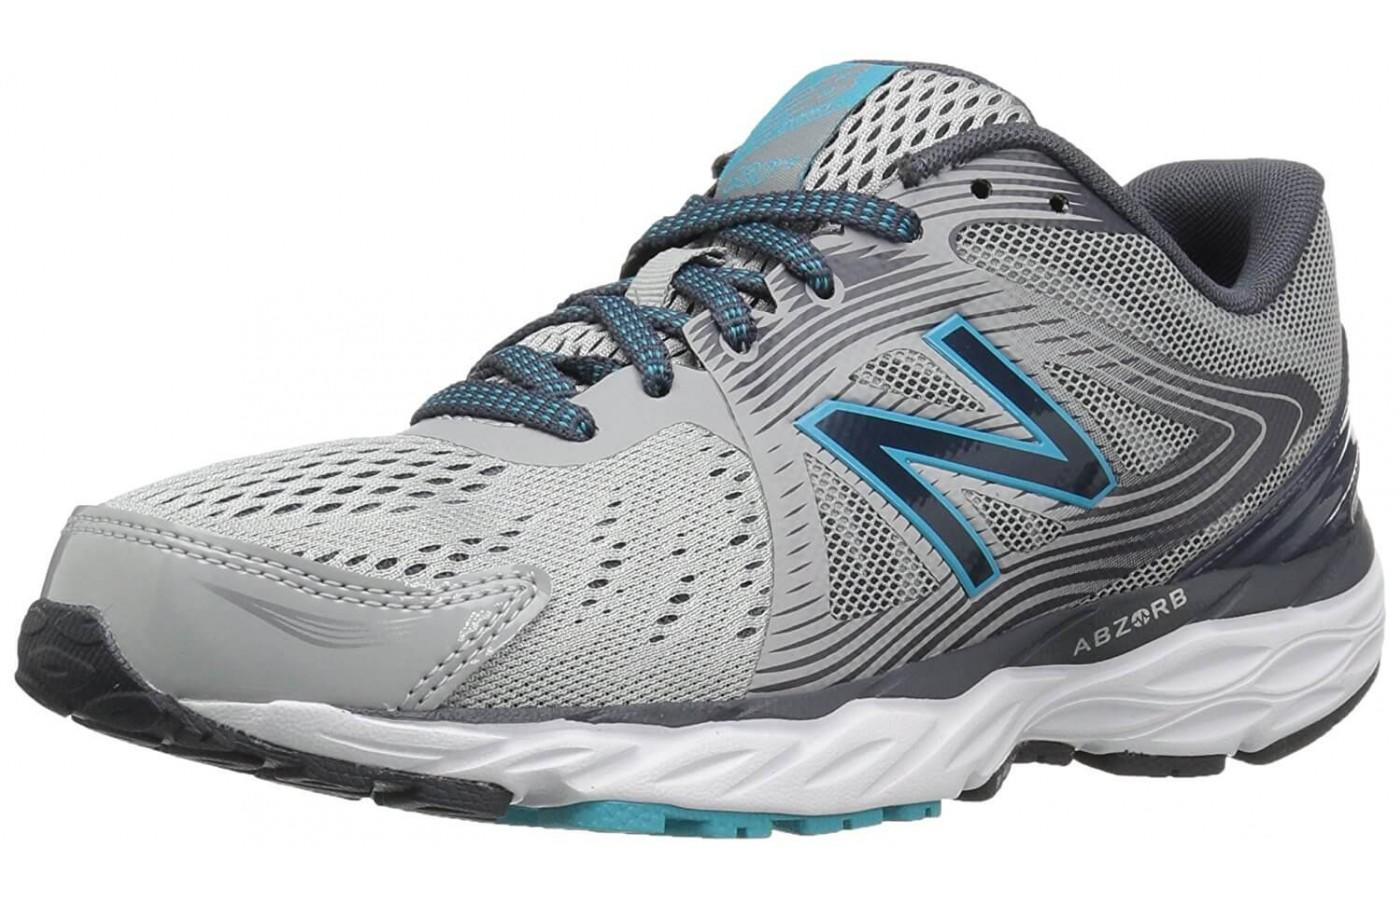 The New Balance 680V4 is a neutral shoe